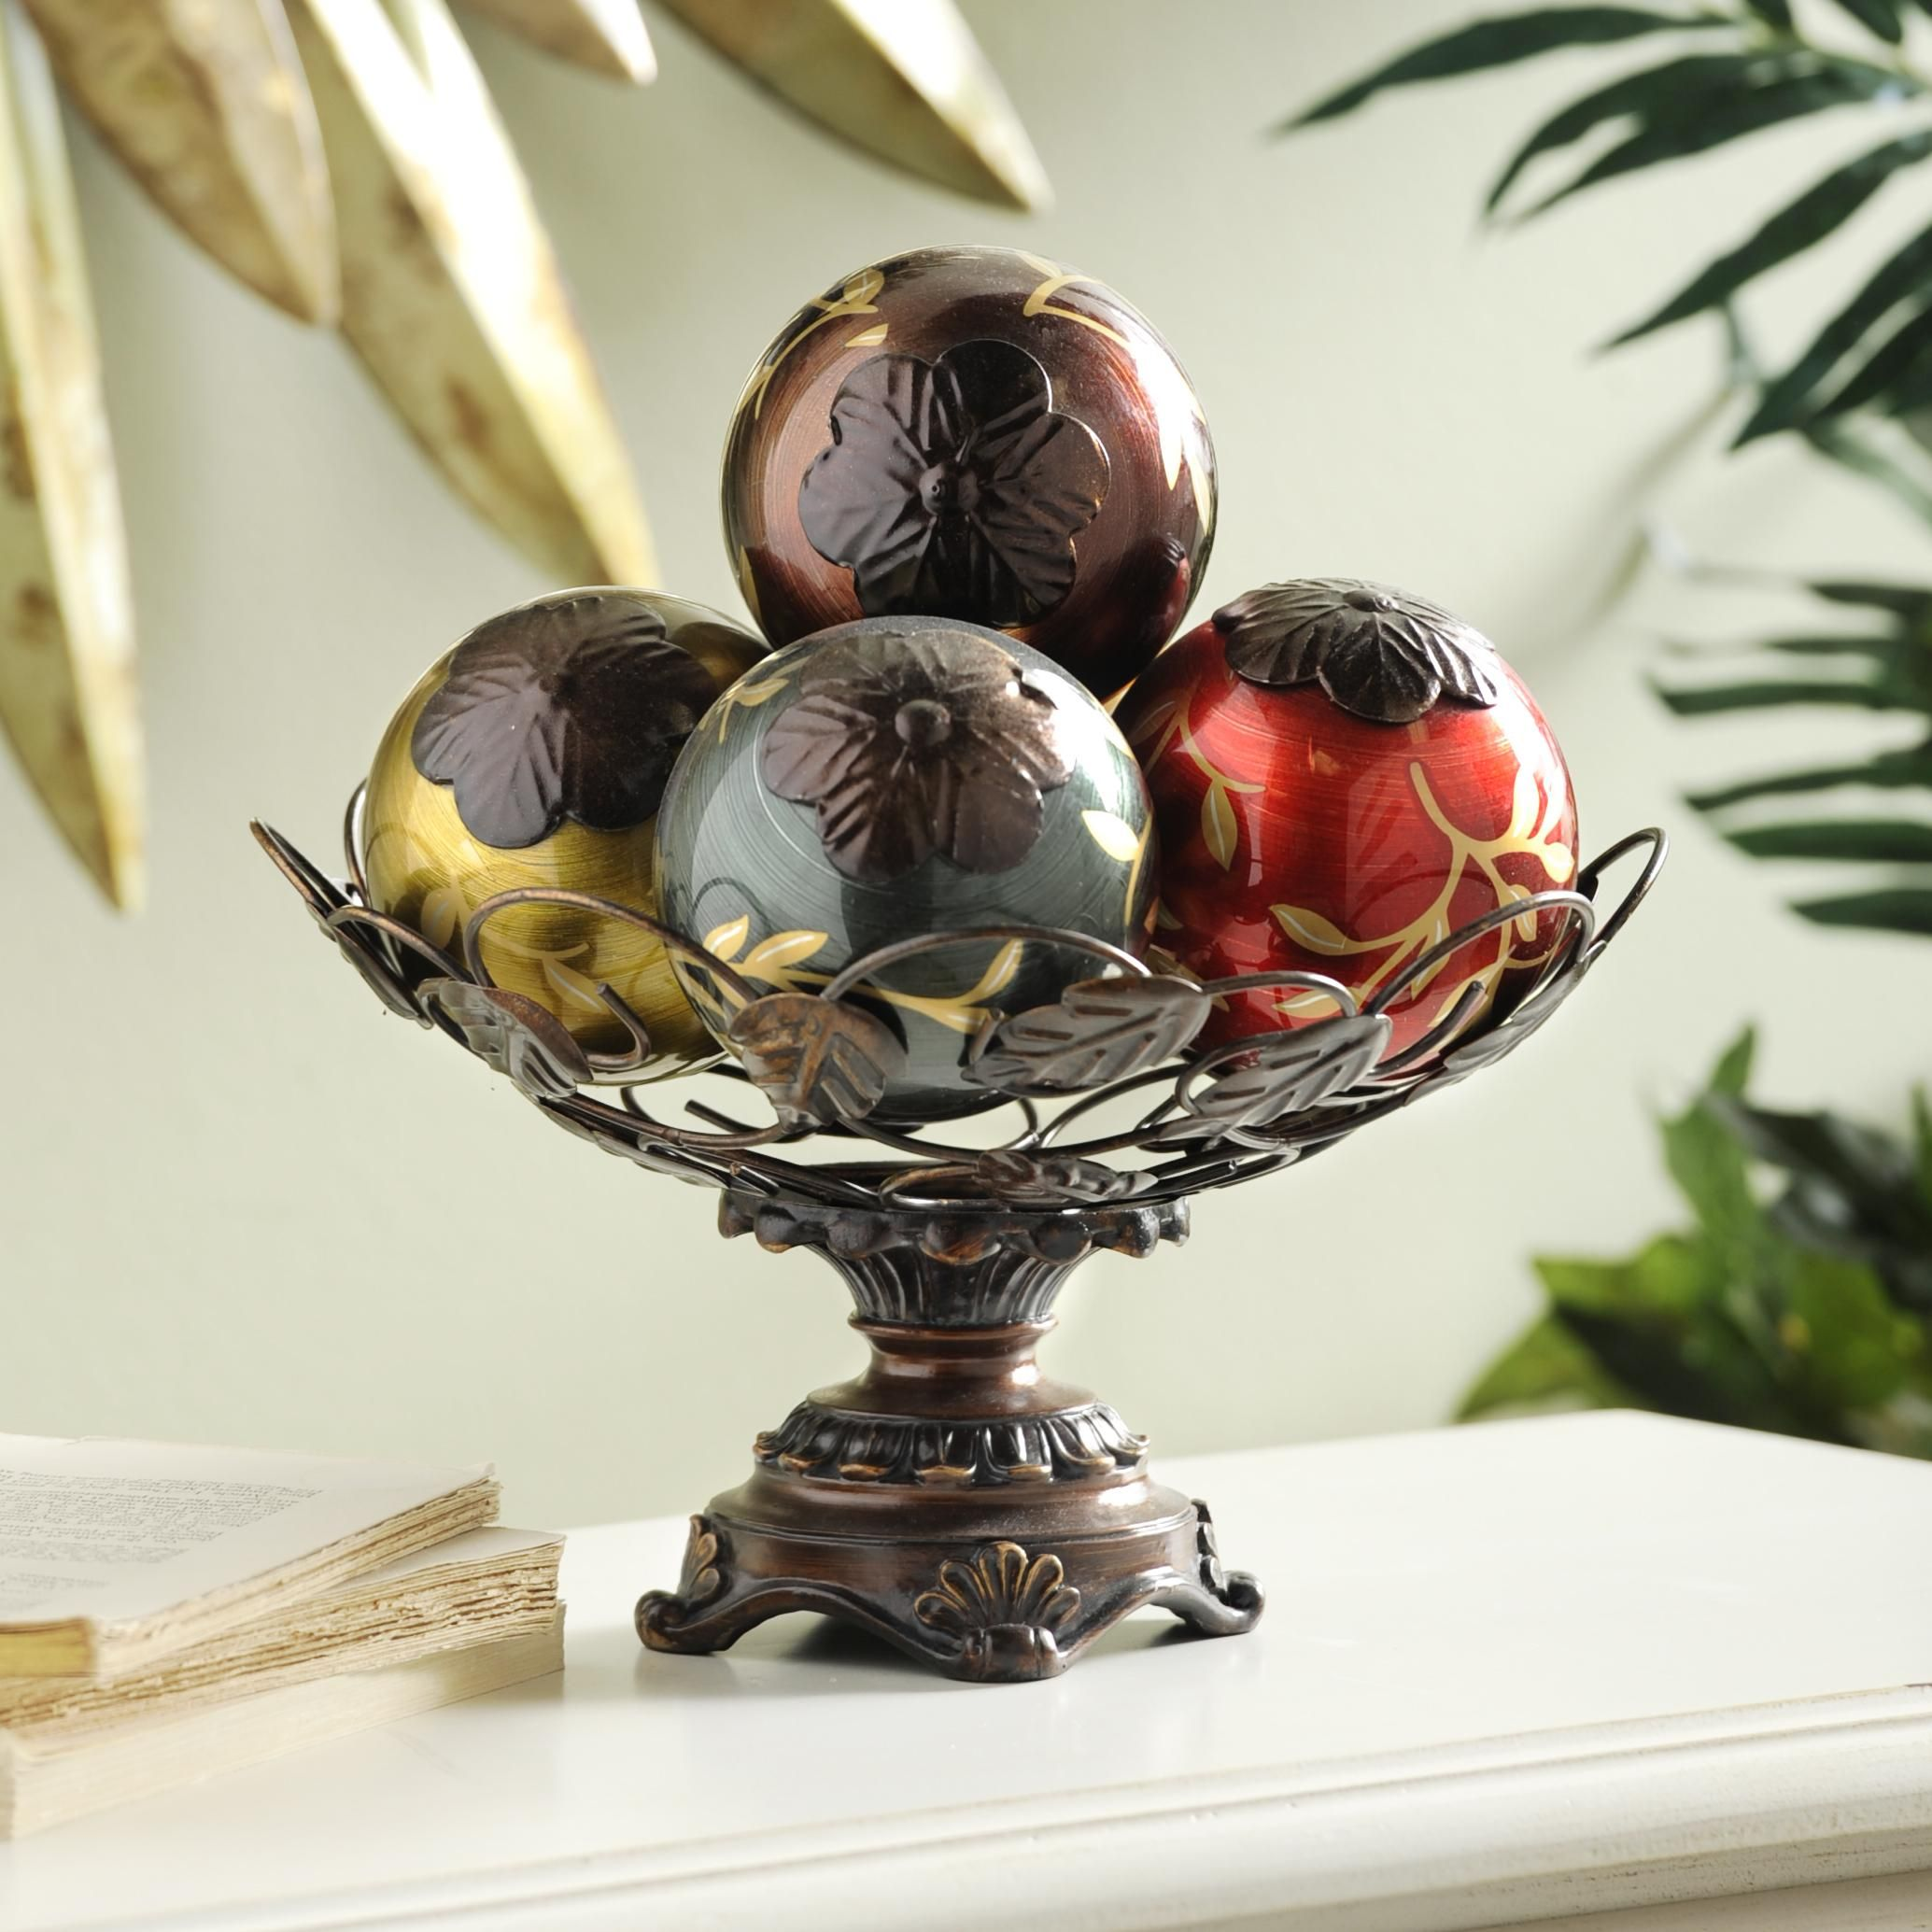 Kirklands Vine Glass Orb Bowl Is The Perfect Colorful Addition For Your Console Table Or Dining Room Pretty Fall Decor